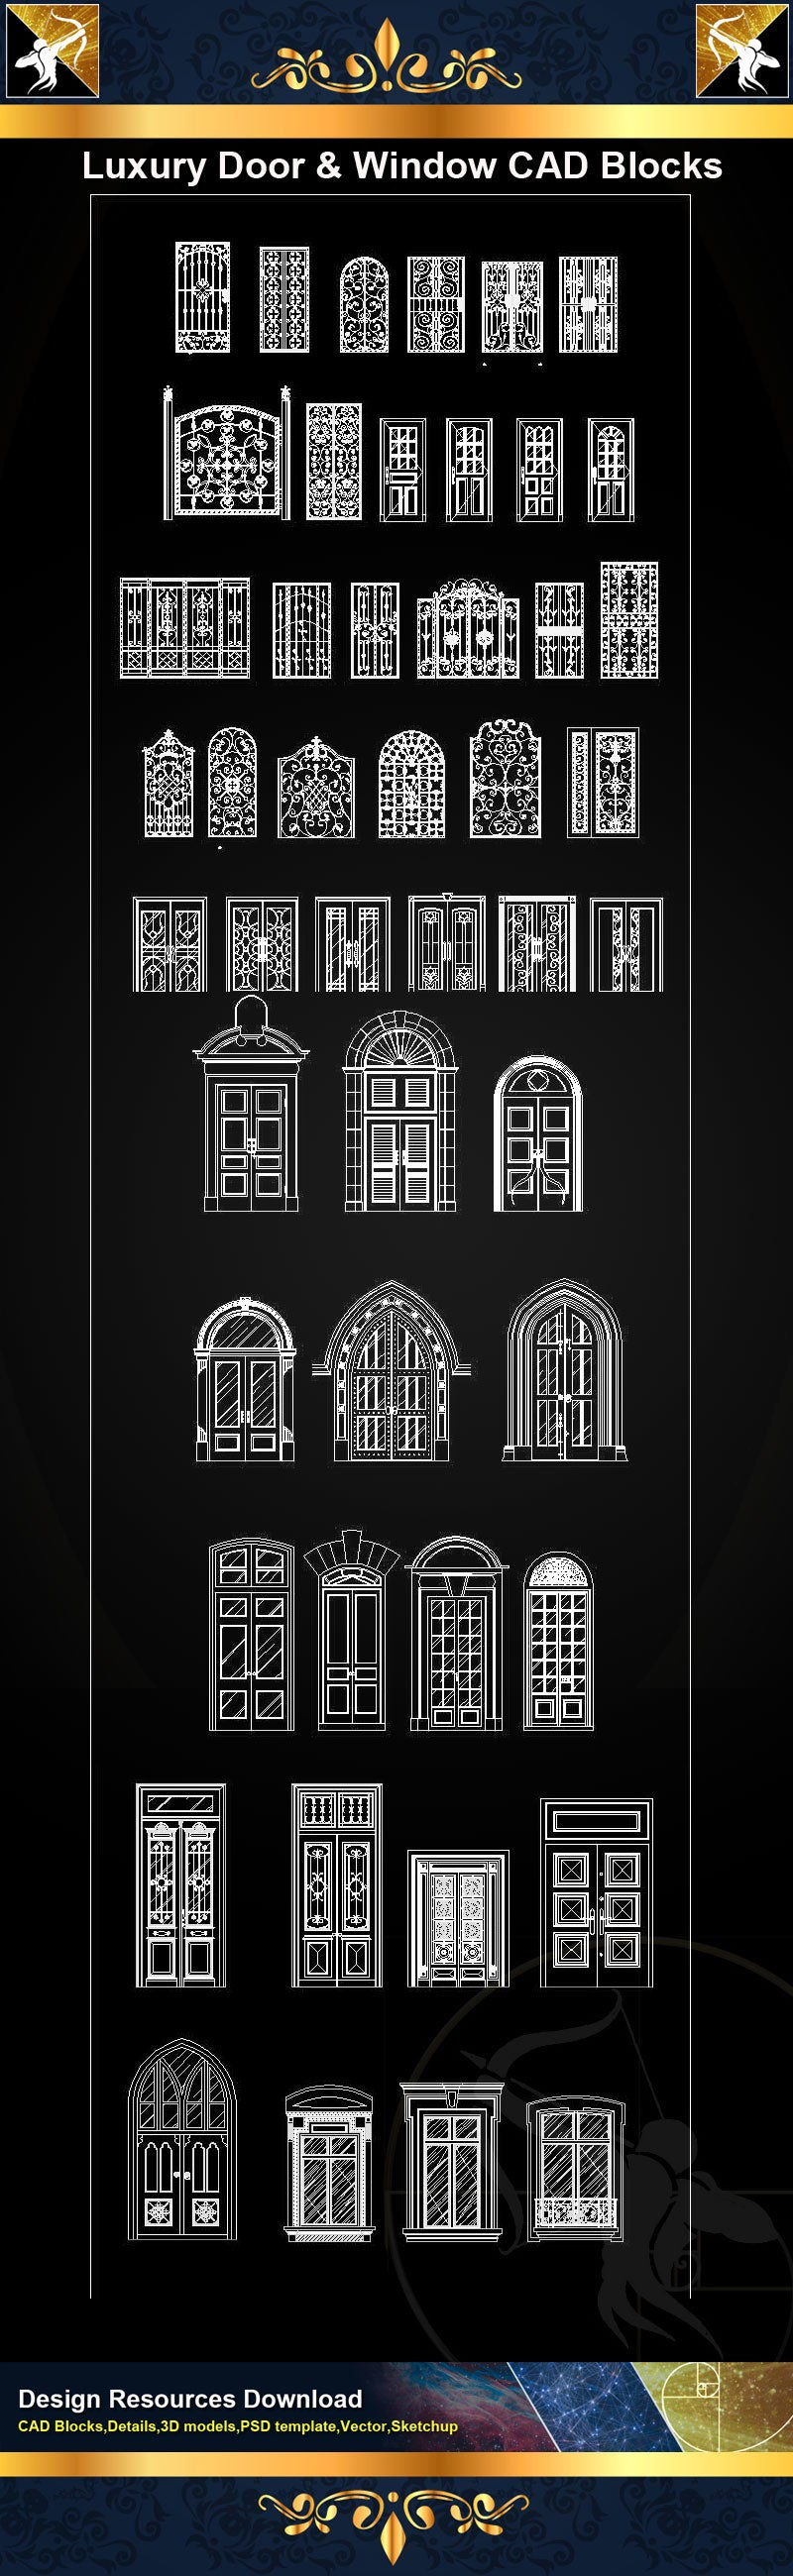 Luxury Door & Window Design elements Door frames,panels Decorative mantel pieces